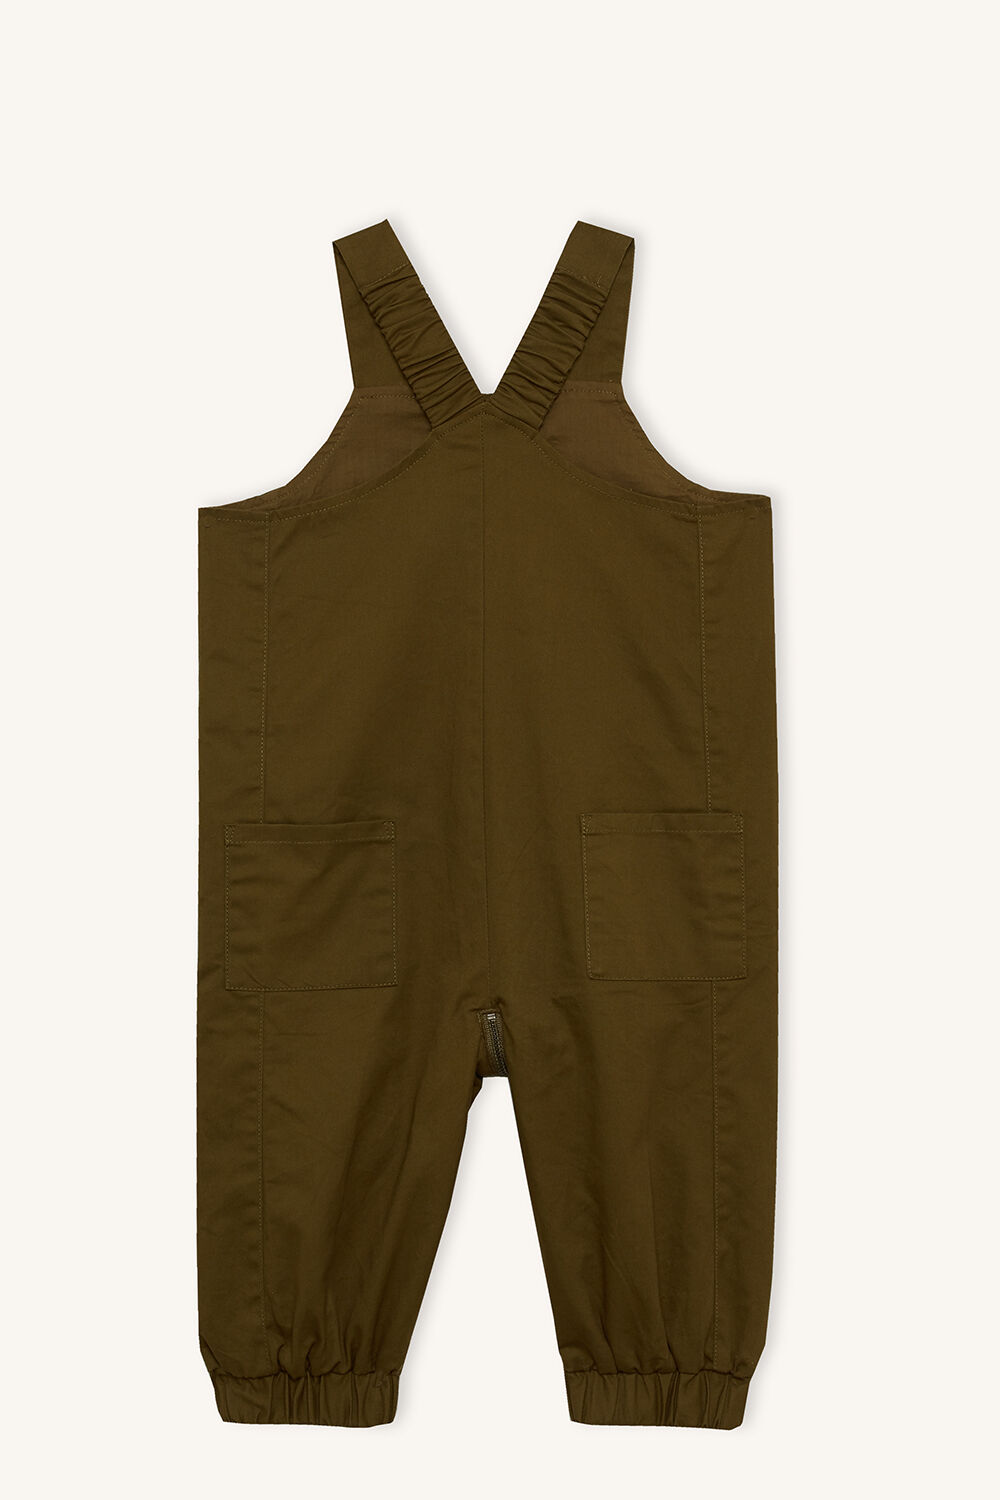 NAPS UTILITY OVERALL in colour COVERT GREEN